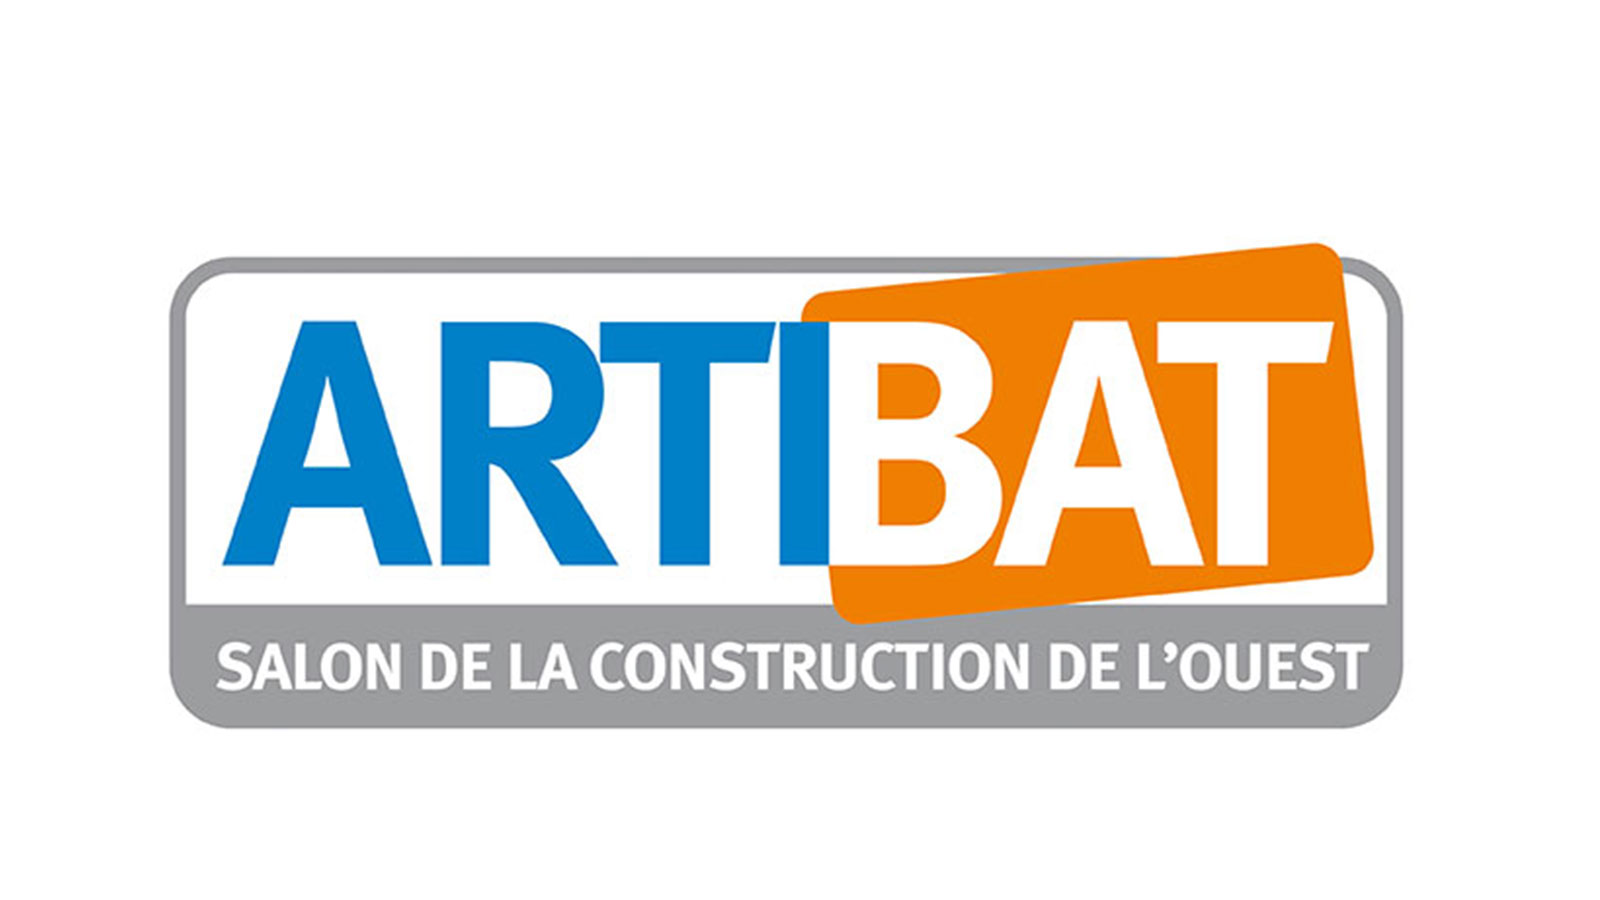 Asite proudly sponsor Artibat Construction Salon in Rennes, France